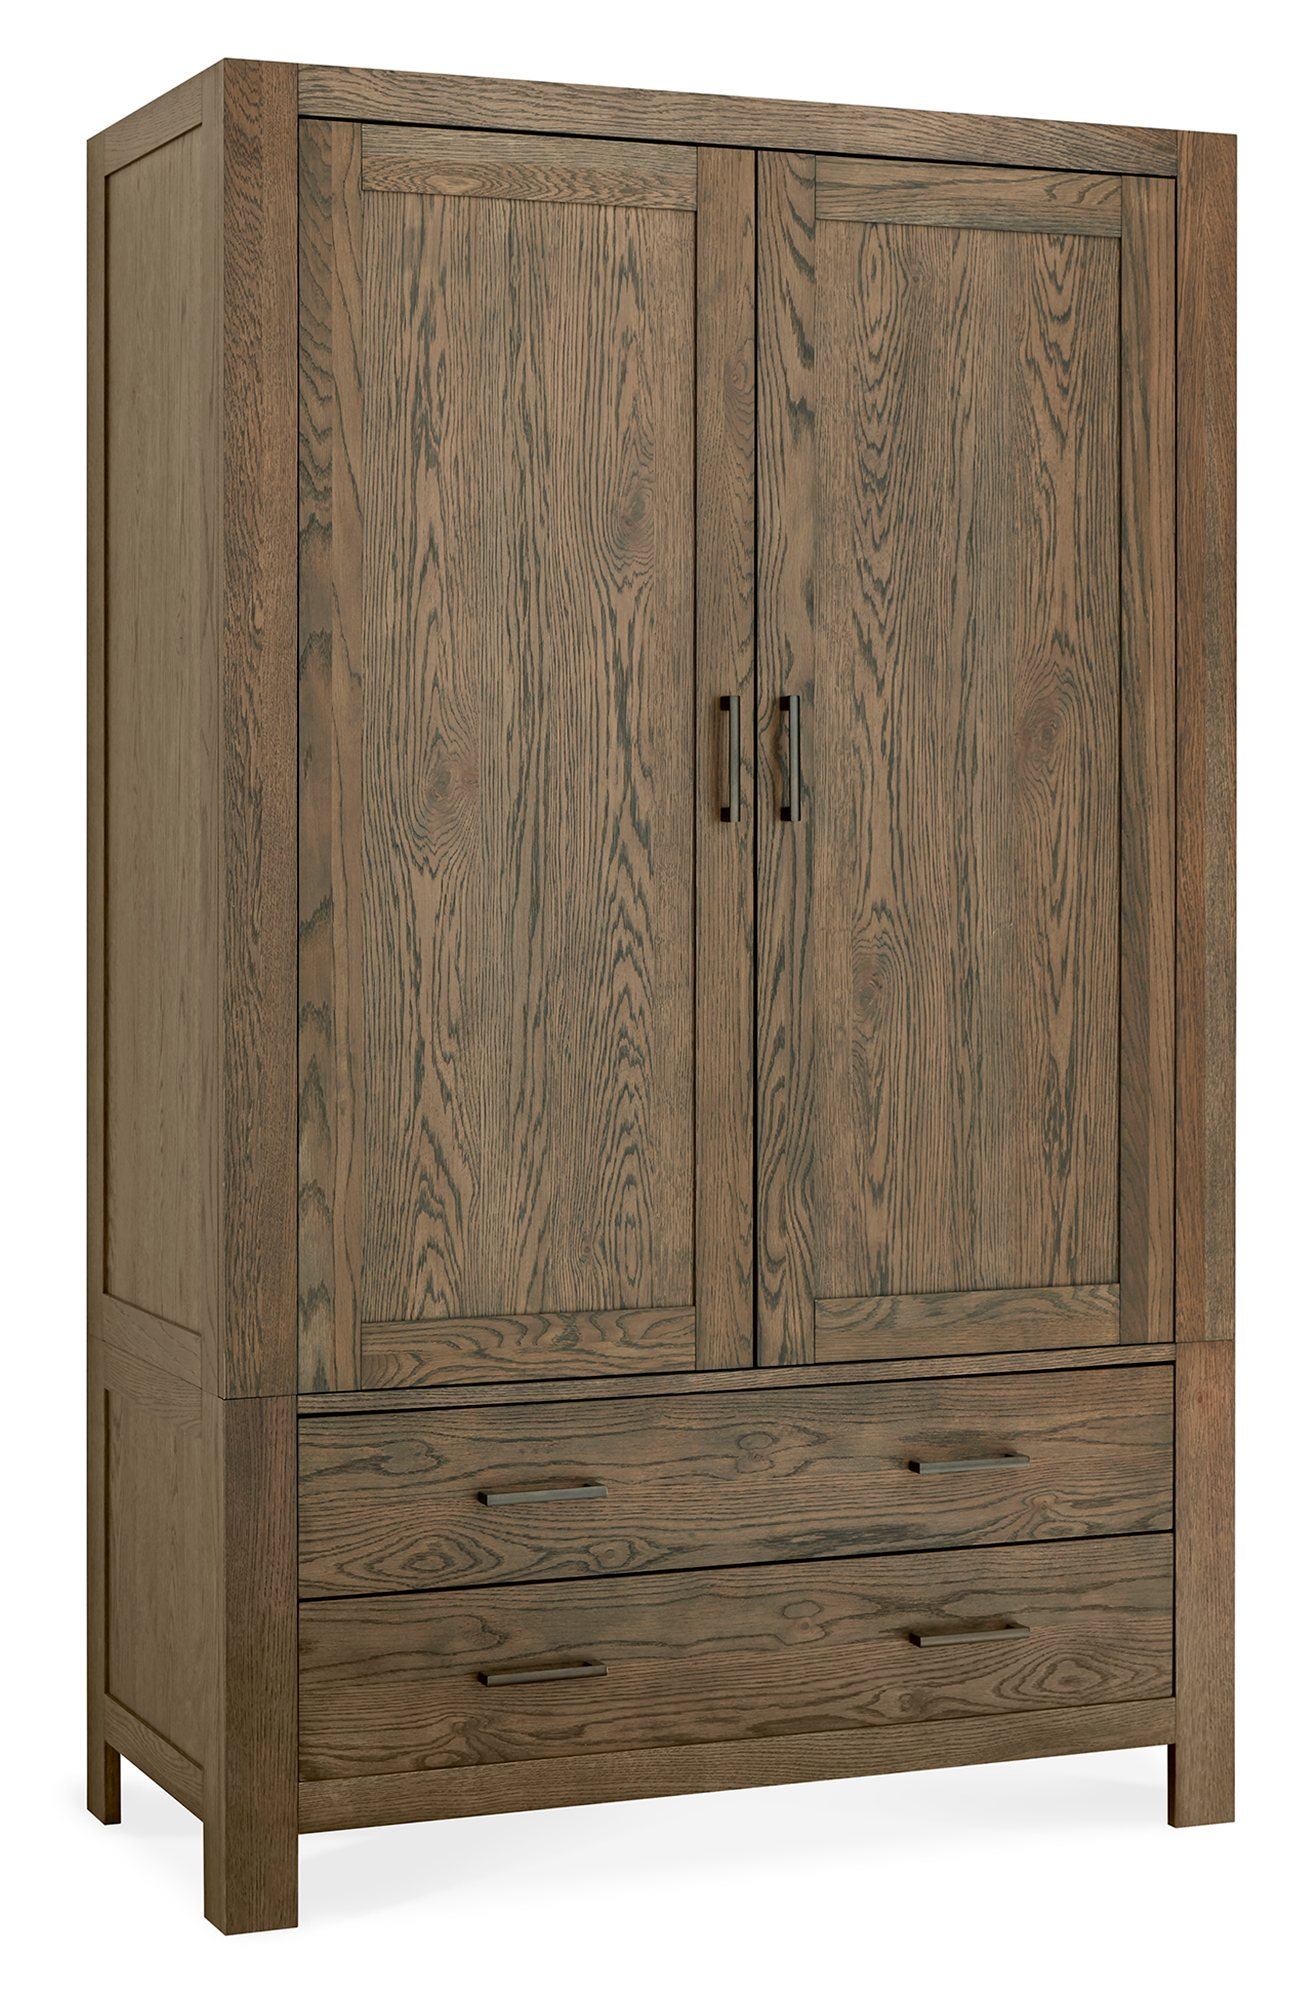 LILLE DARK OAK LARGE DOUBLE ROBE WITH DRAWERS - ANGLE DETAIL